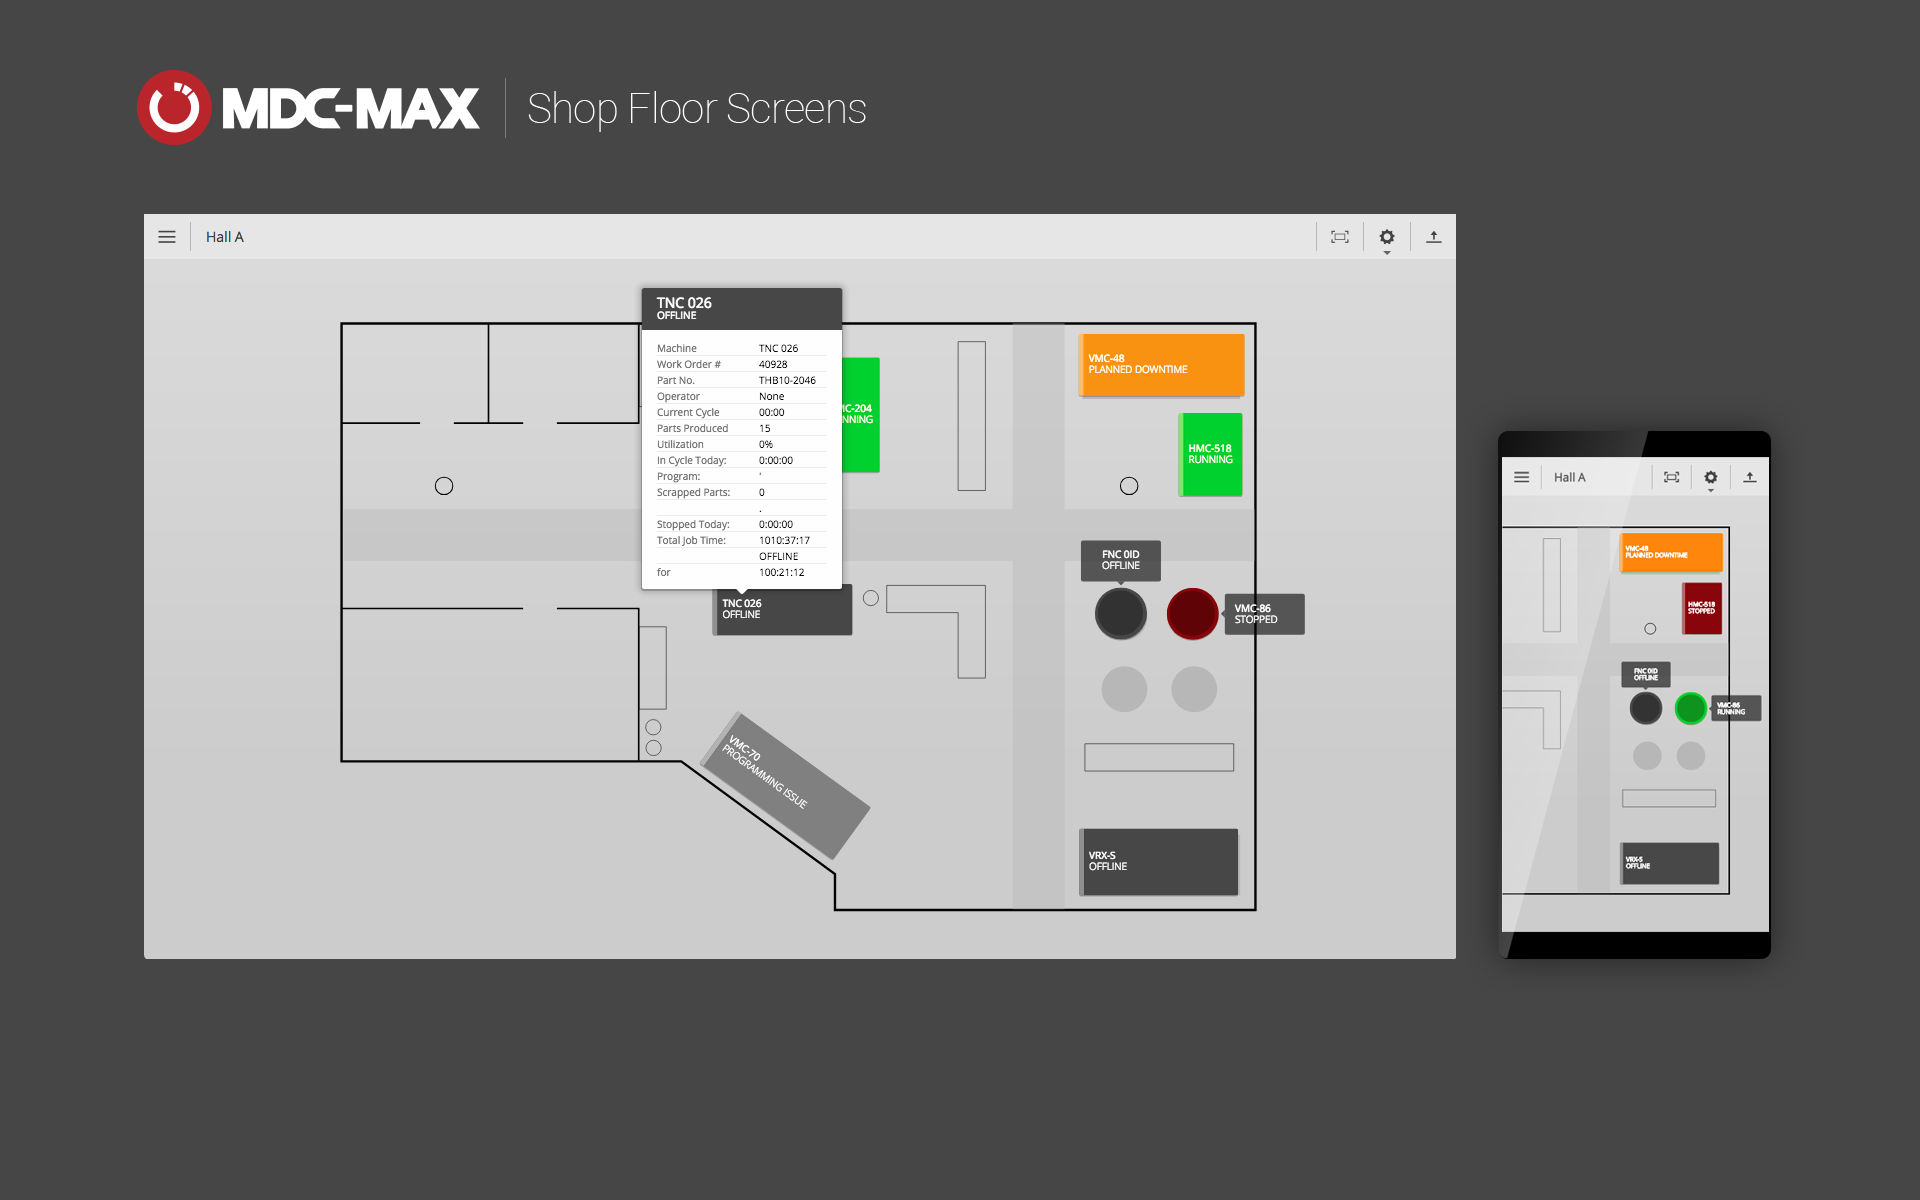 Shop Floor Screens for MDC-Max released | CIMCO